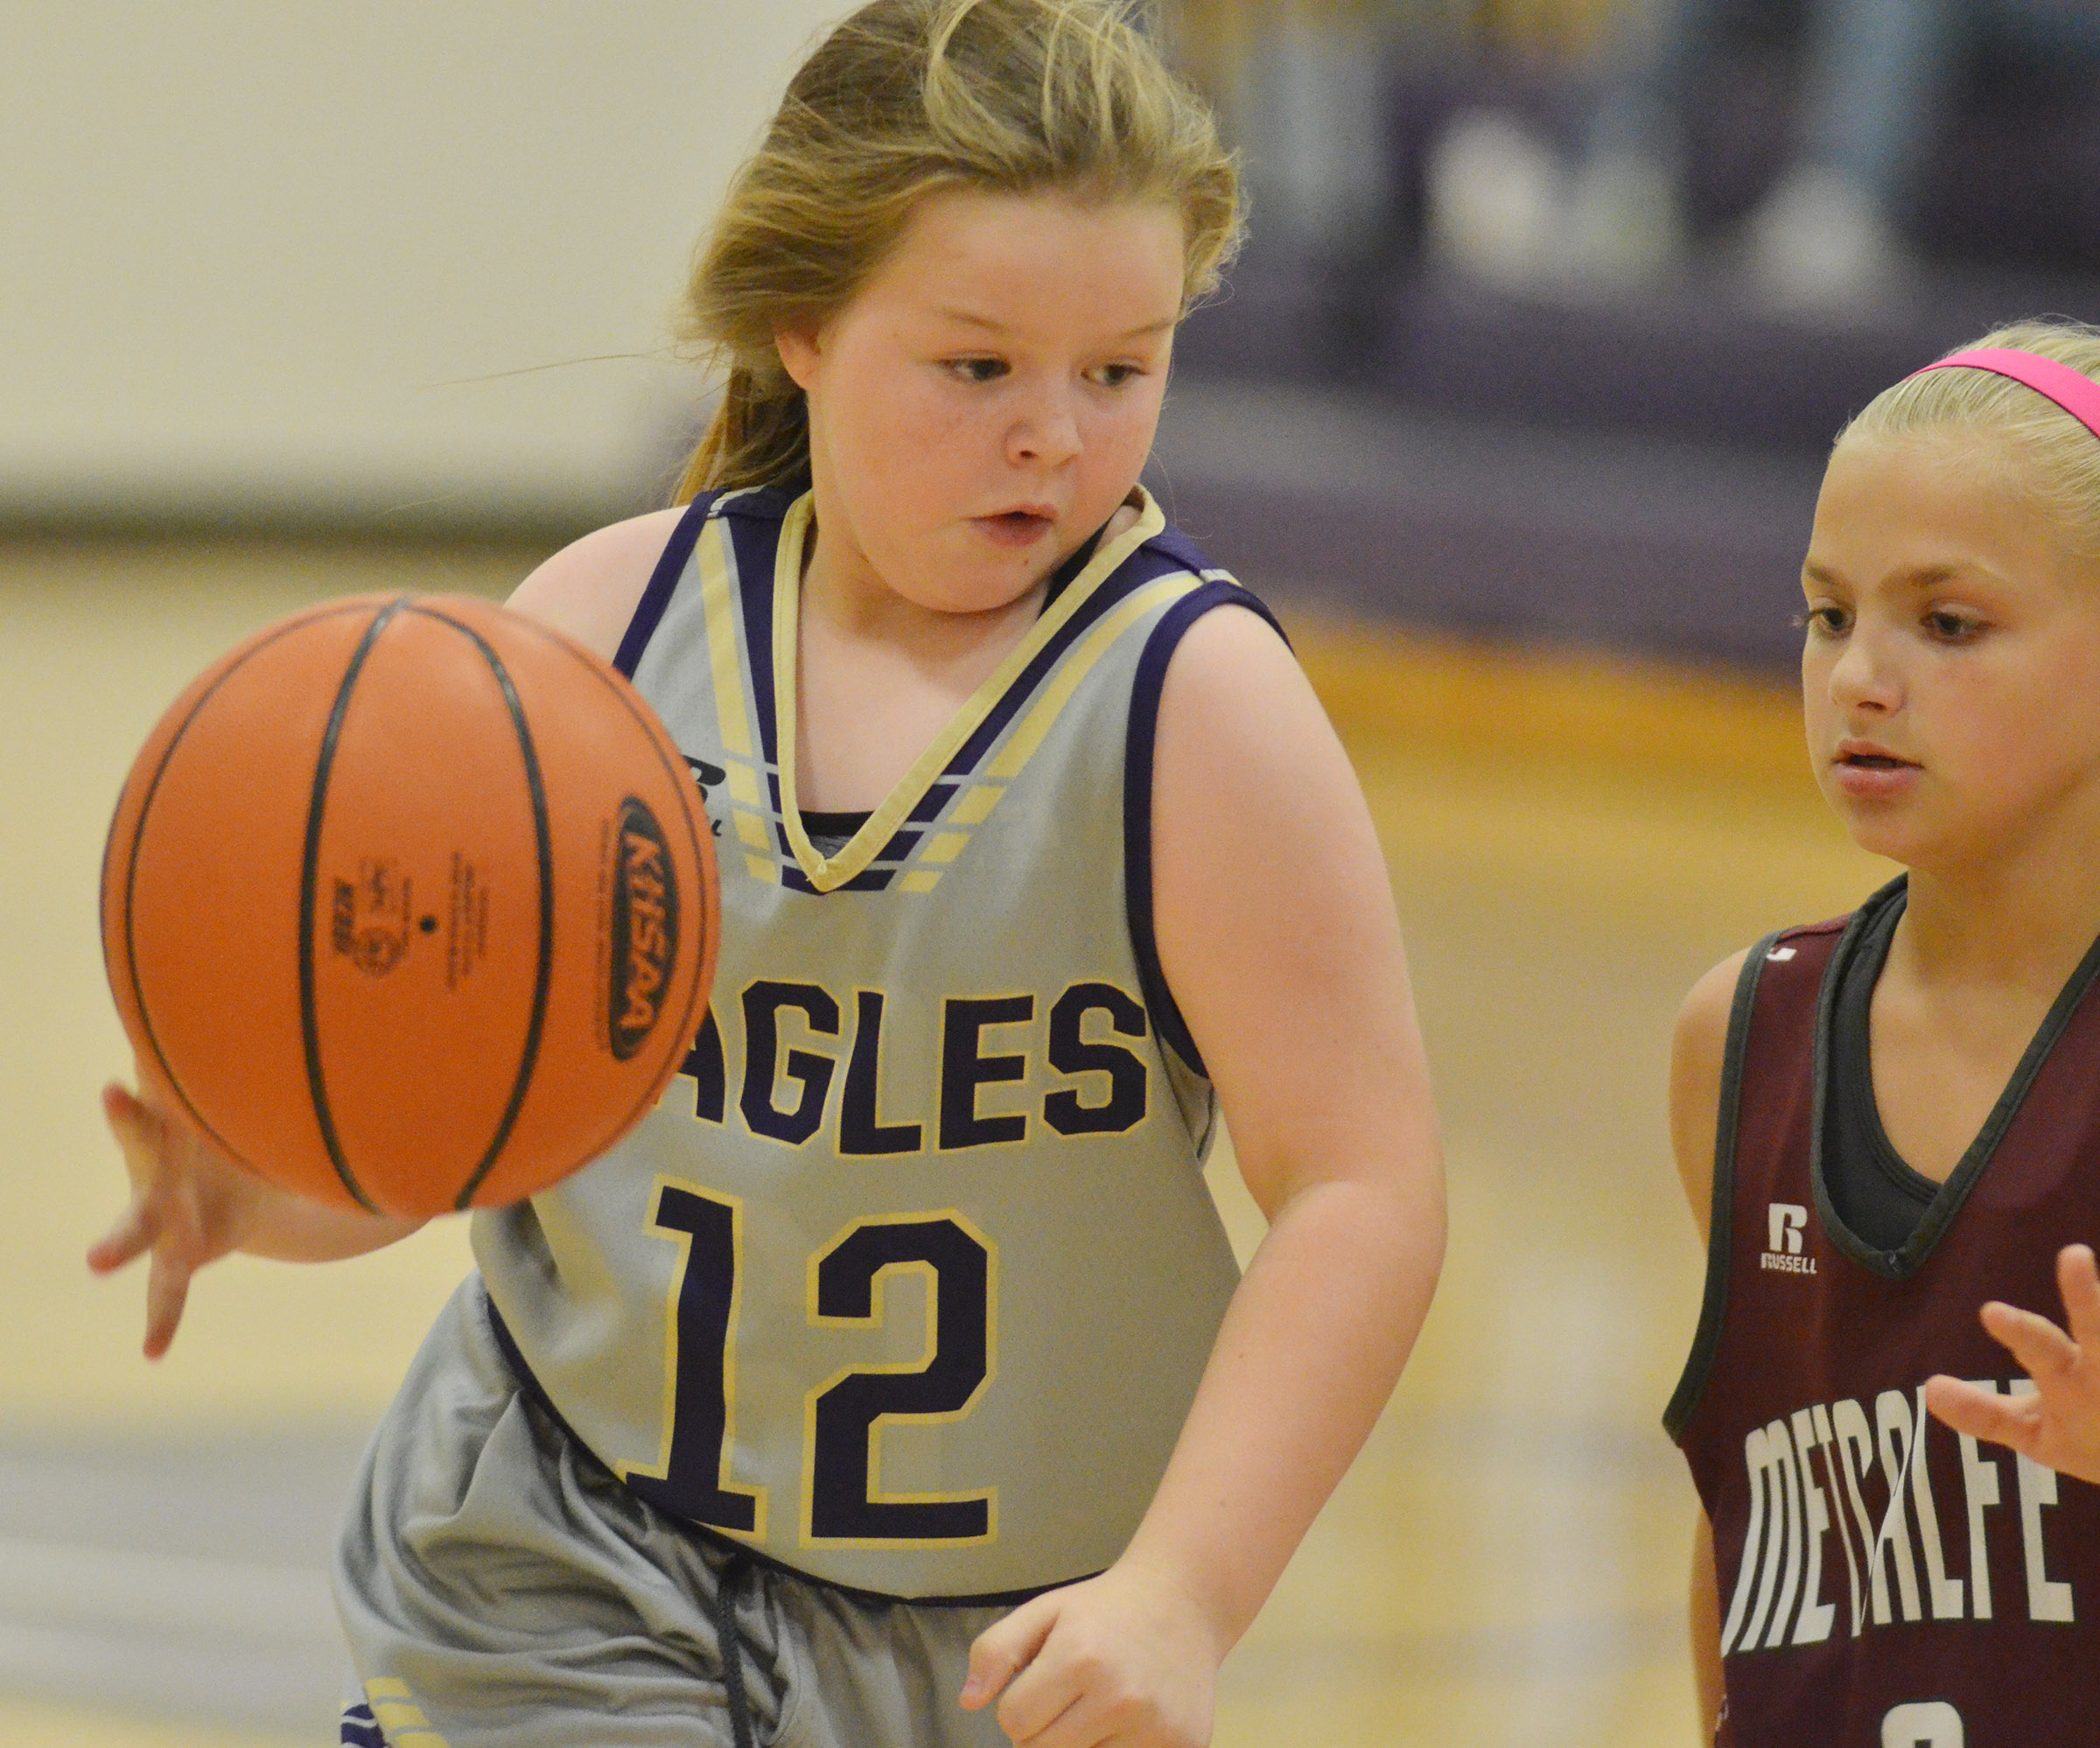 Campbellsville Elementary School fifth-grader Miley Hash dribbles.